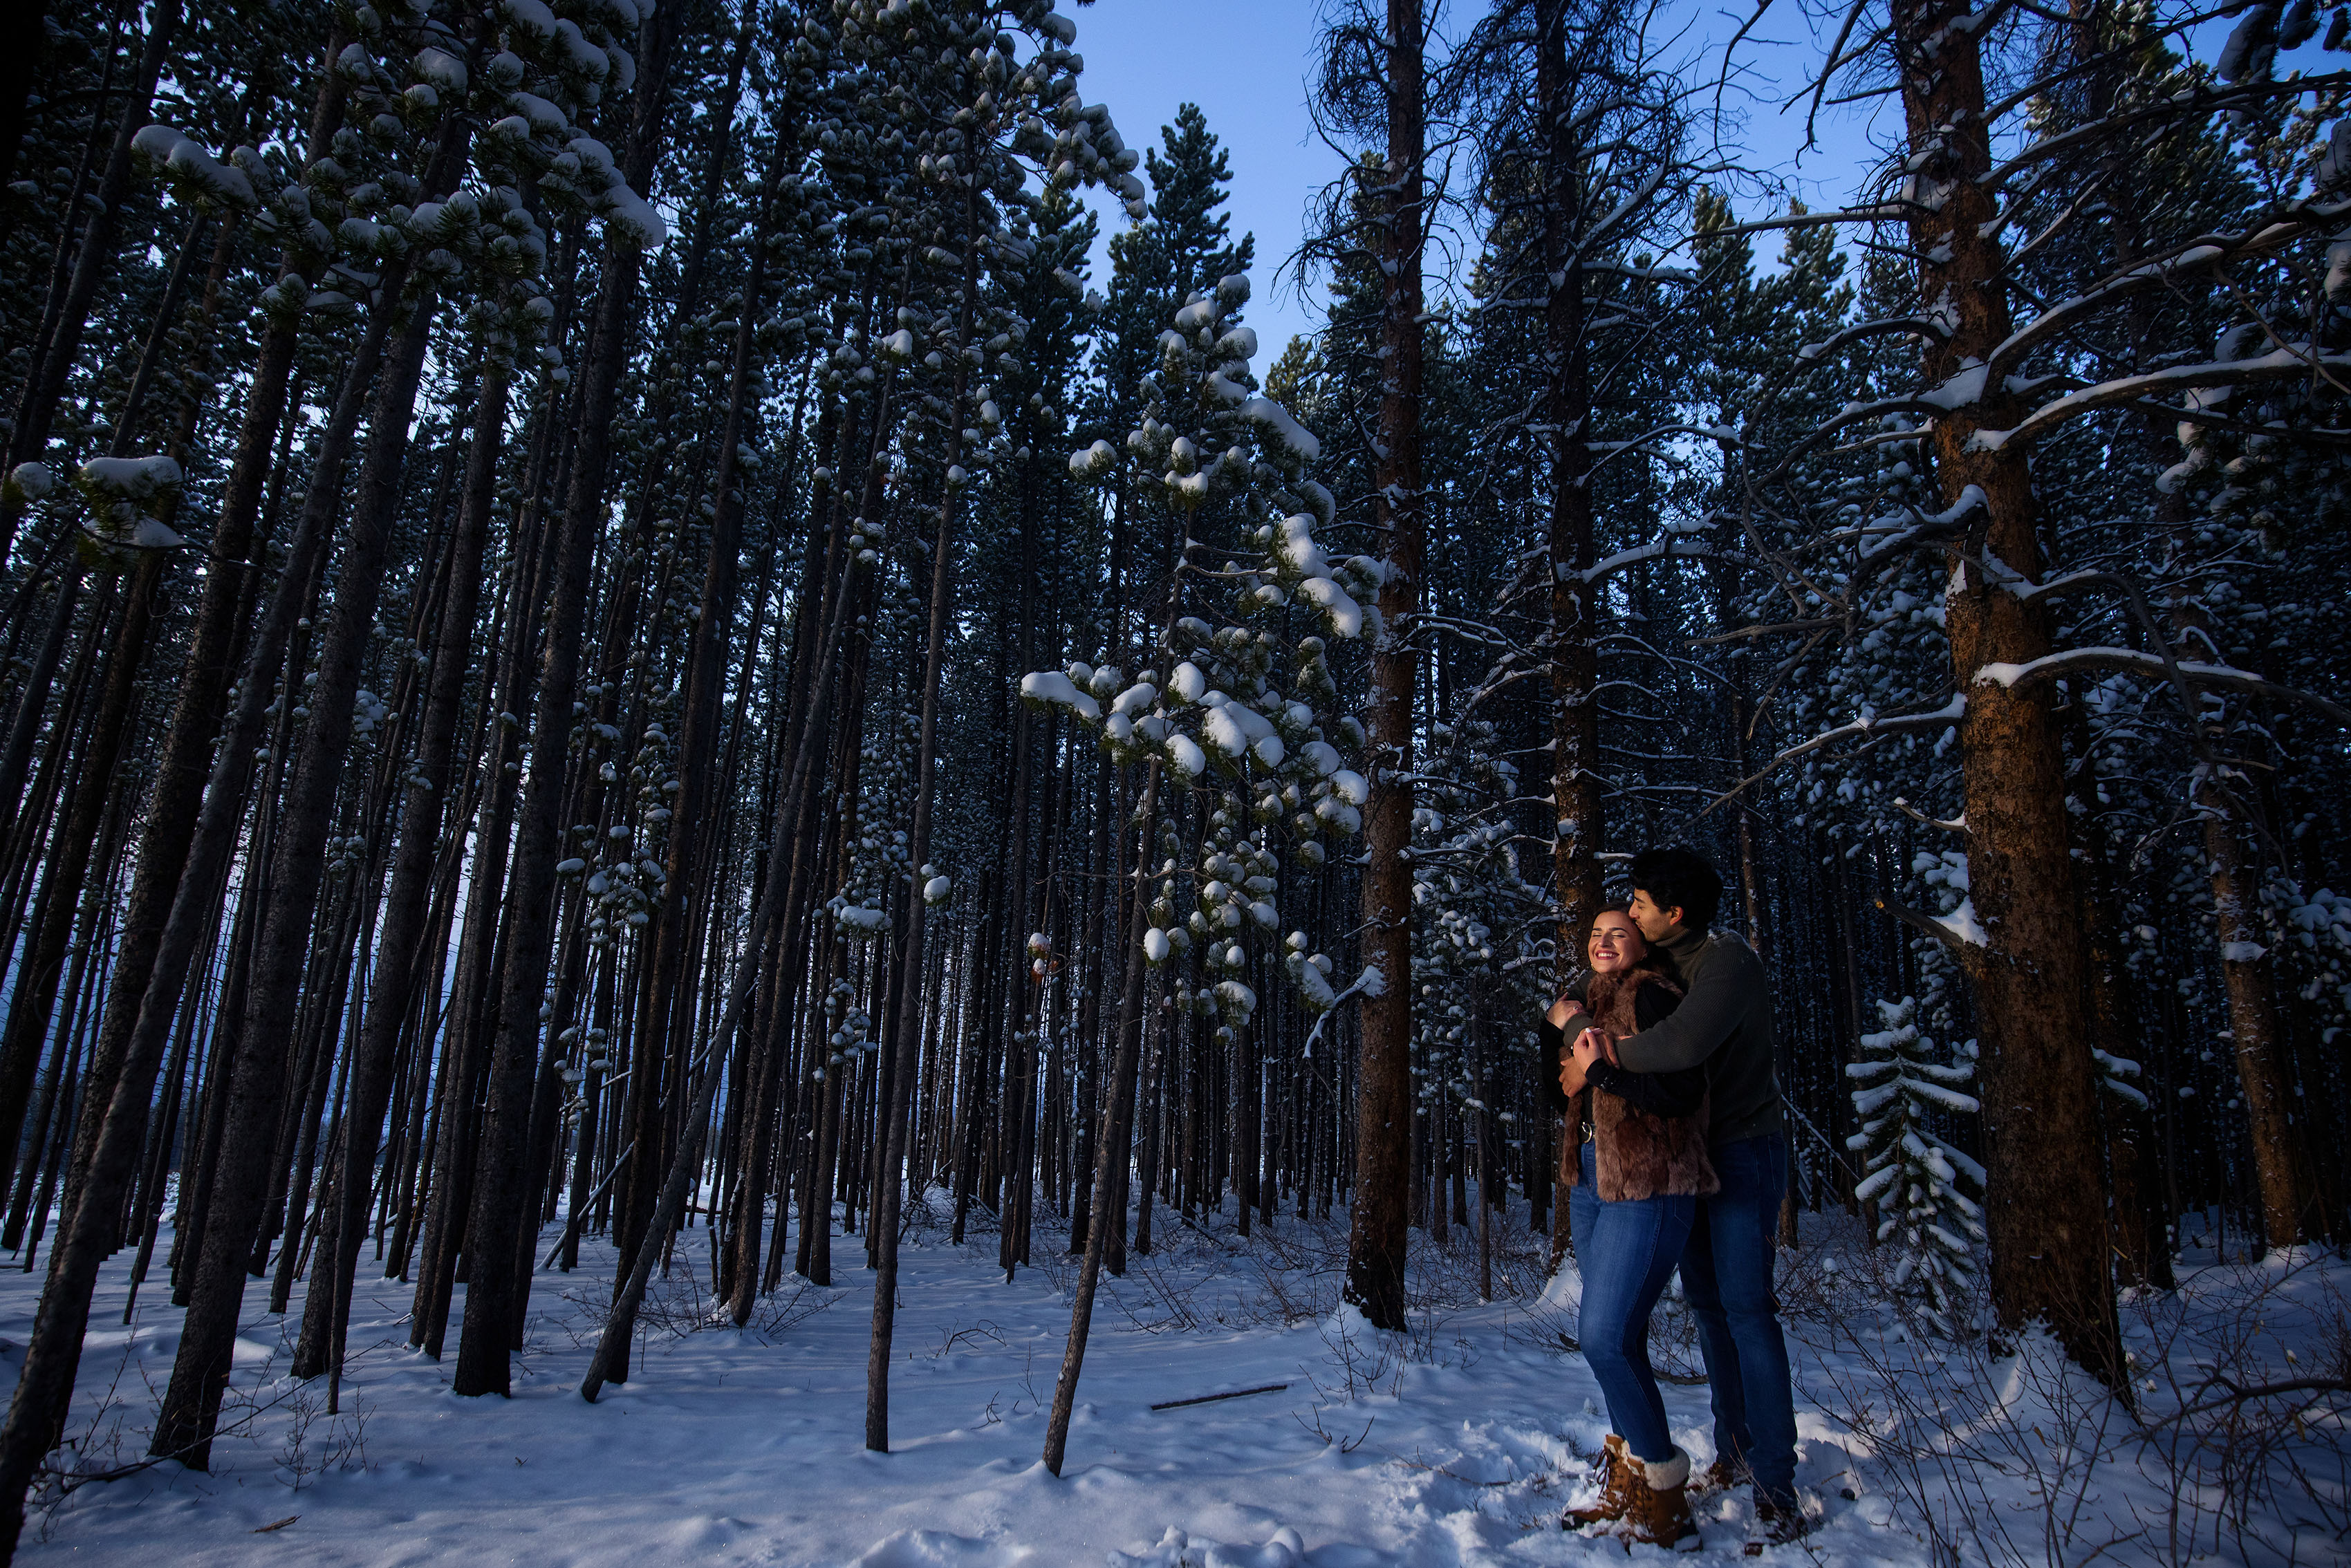 Raul kisses Kooper while standing in a grove of snowy pine trees in Breckenridge